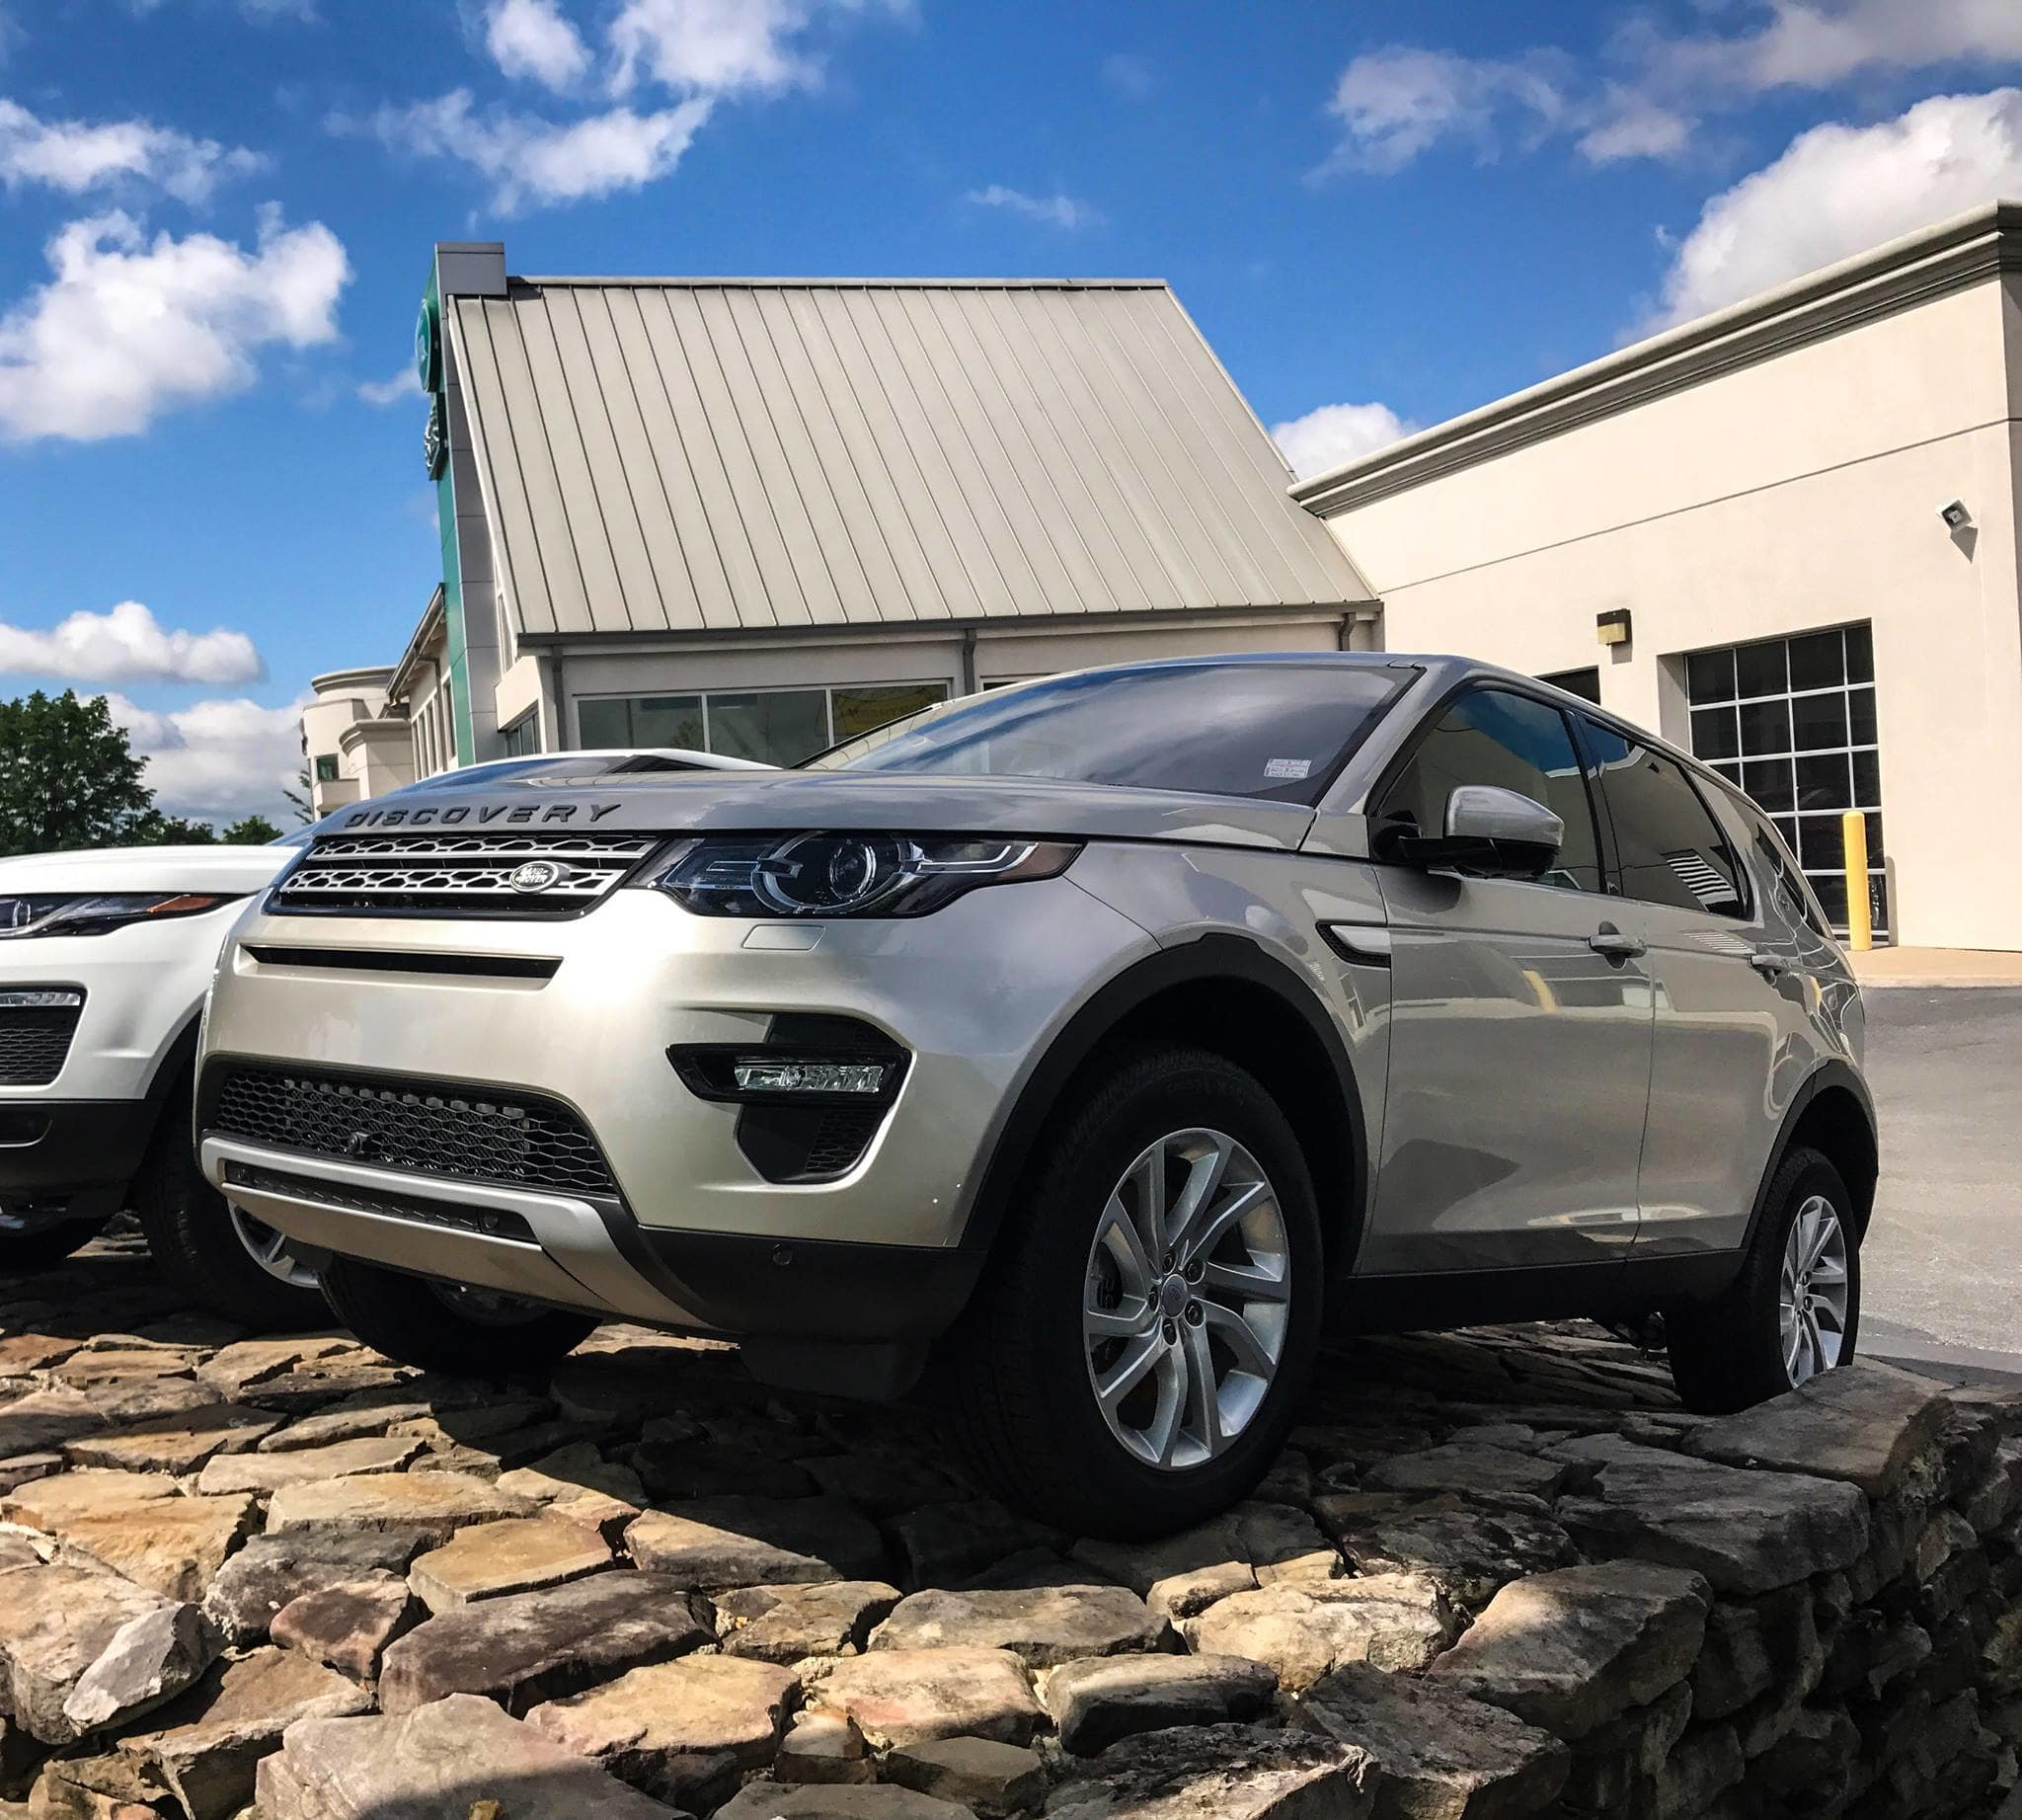 Used Cars Chattanooga Inspirational About Land Rover Chattanooga